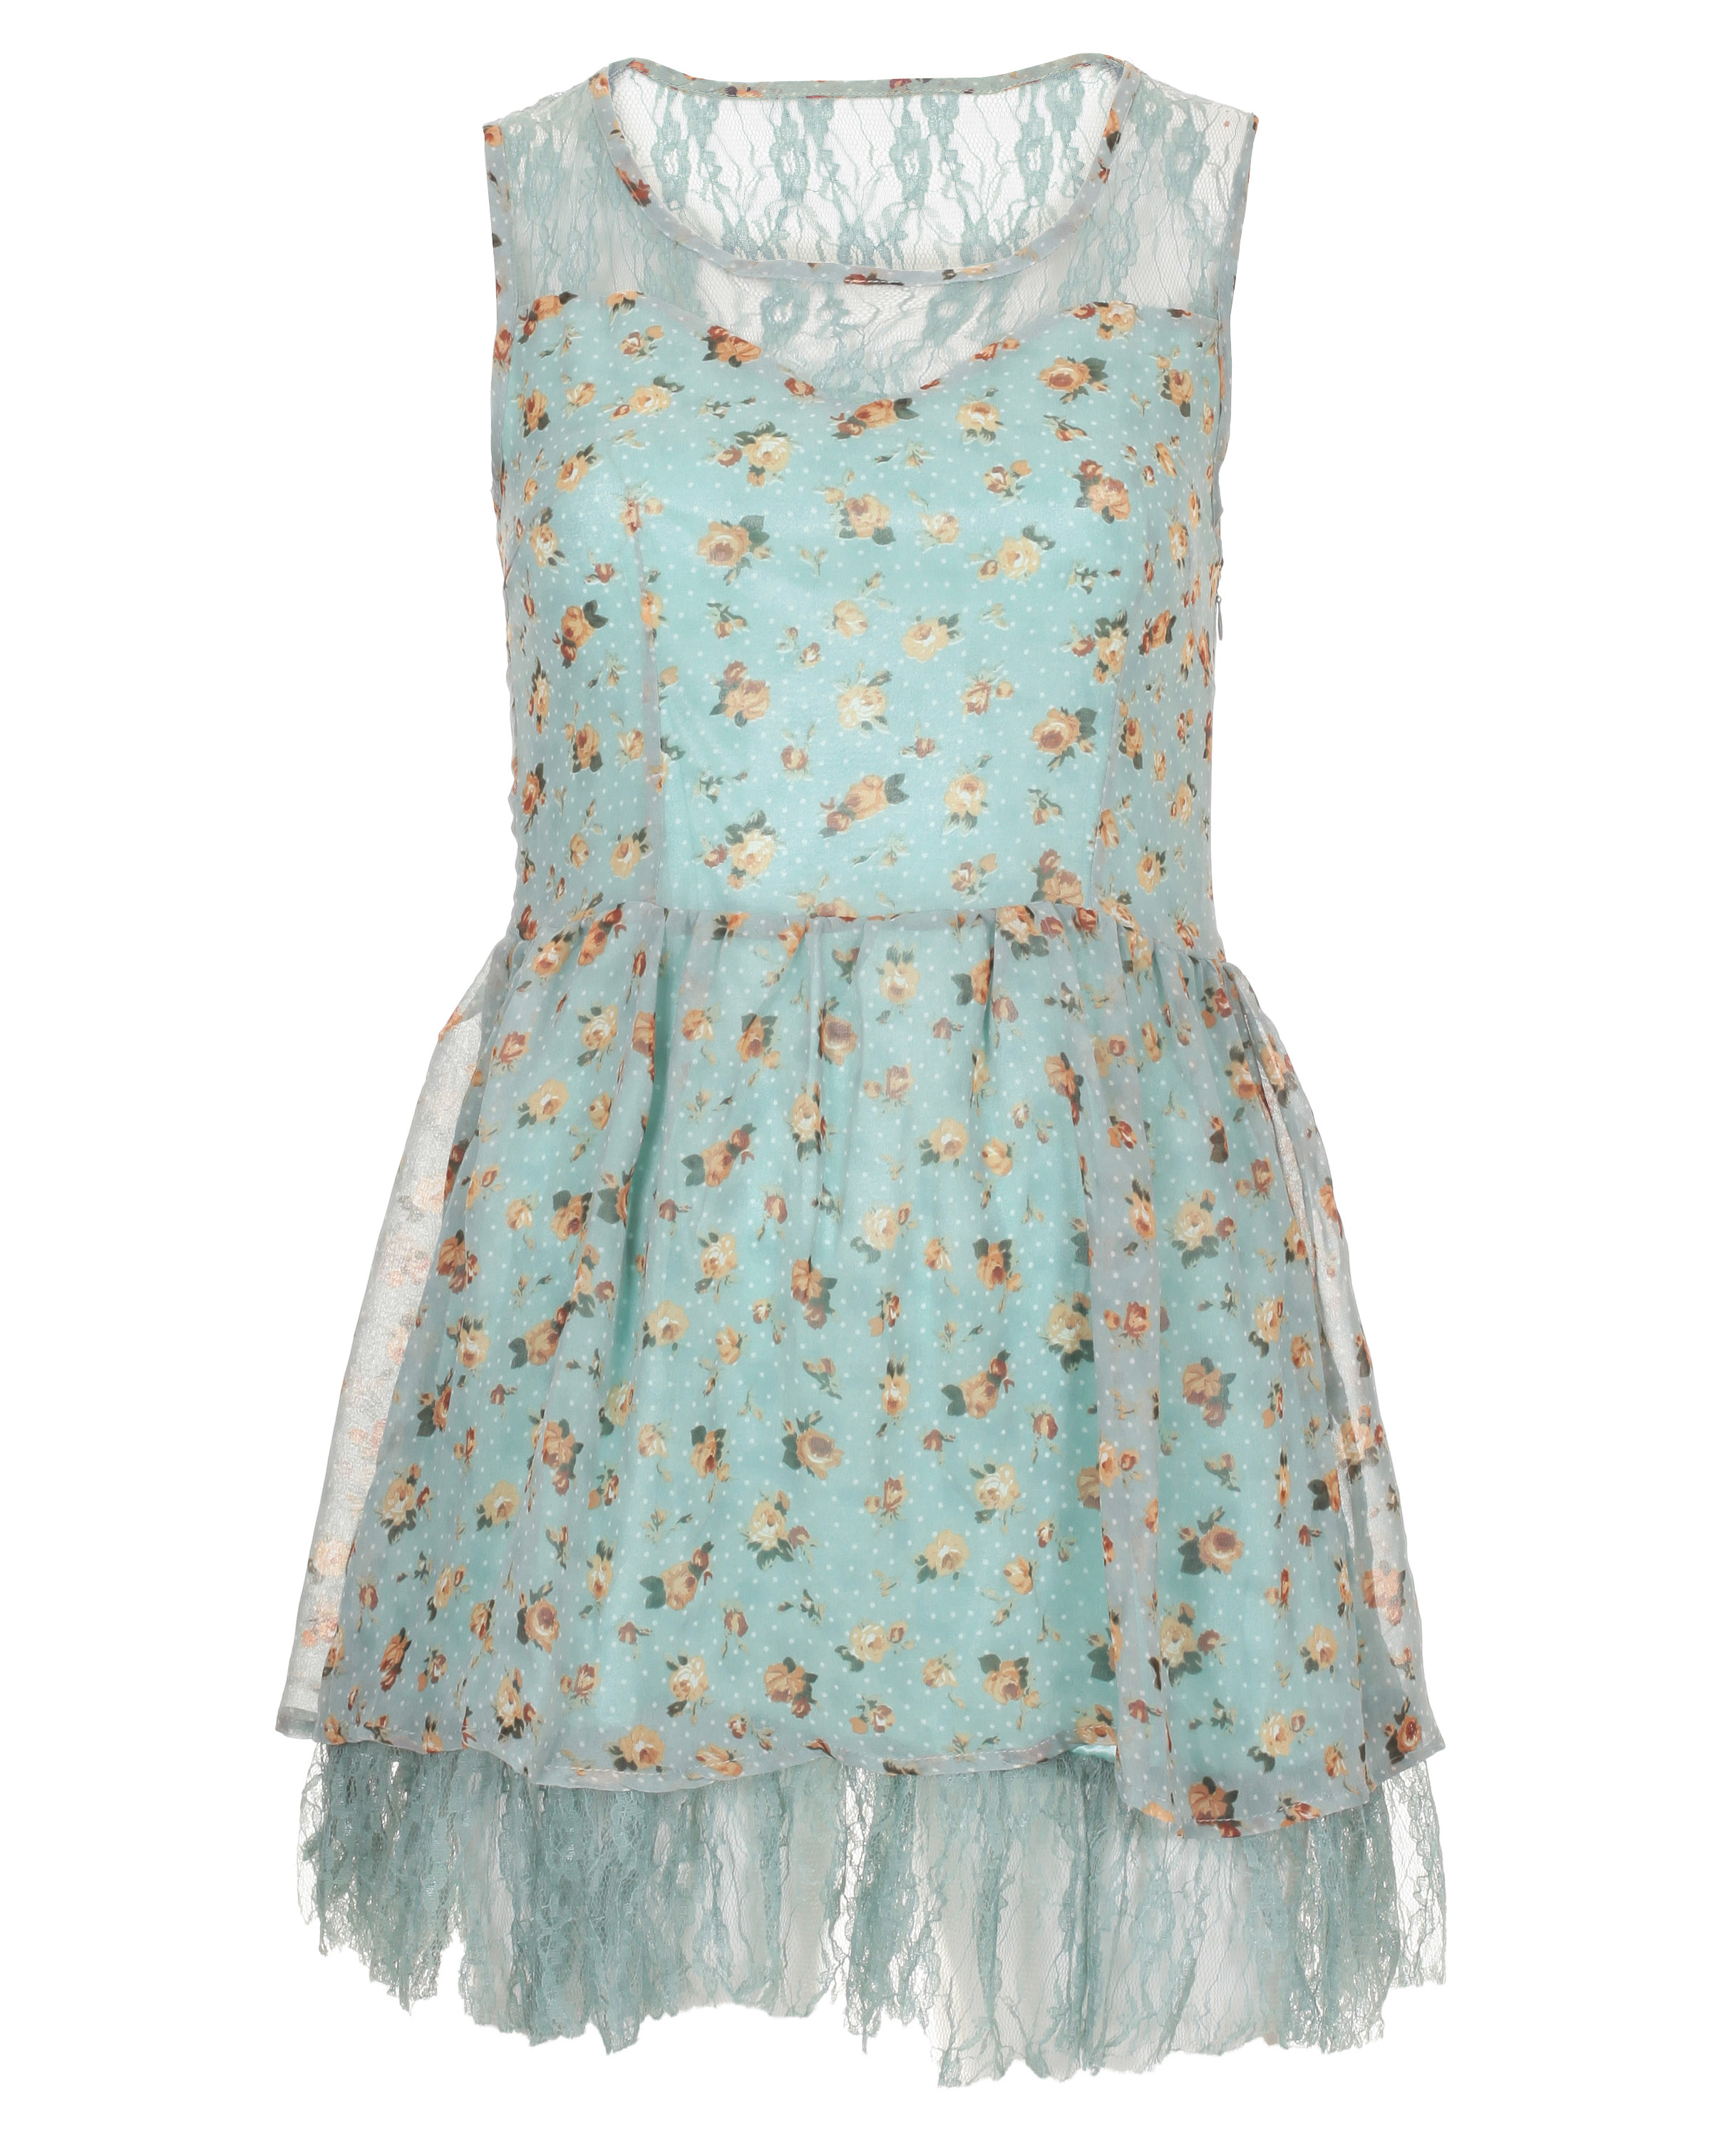 Blue-Inc-Womens-Sleeveless-Lace-Detail-Floral-Dress-Light-Green